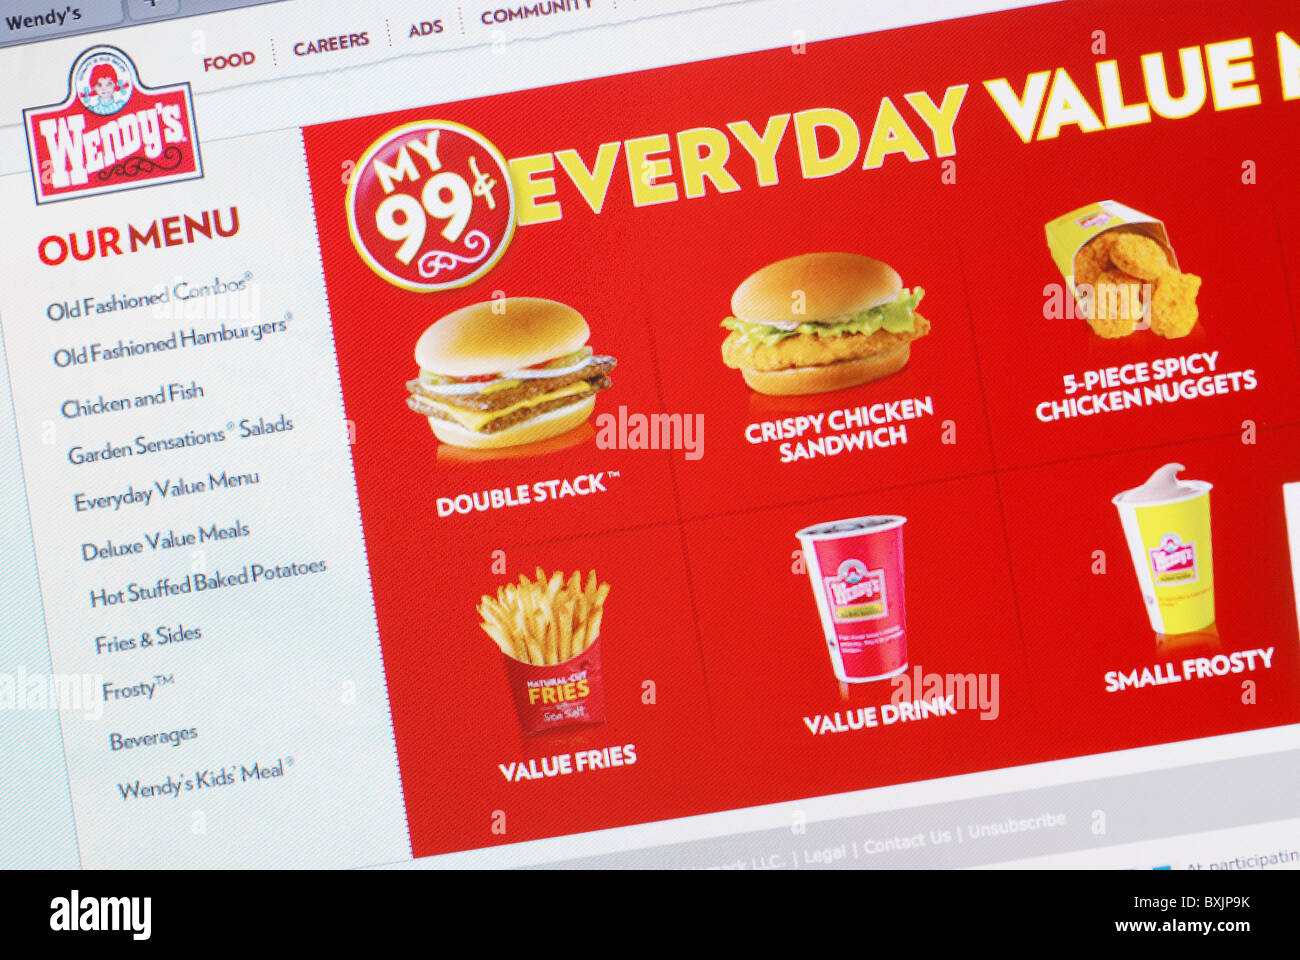 99 Cent Value Meal Ad On Wendys Old Fashioned Hamburgers Website